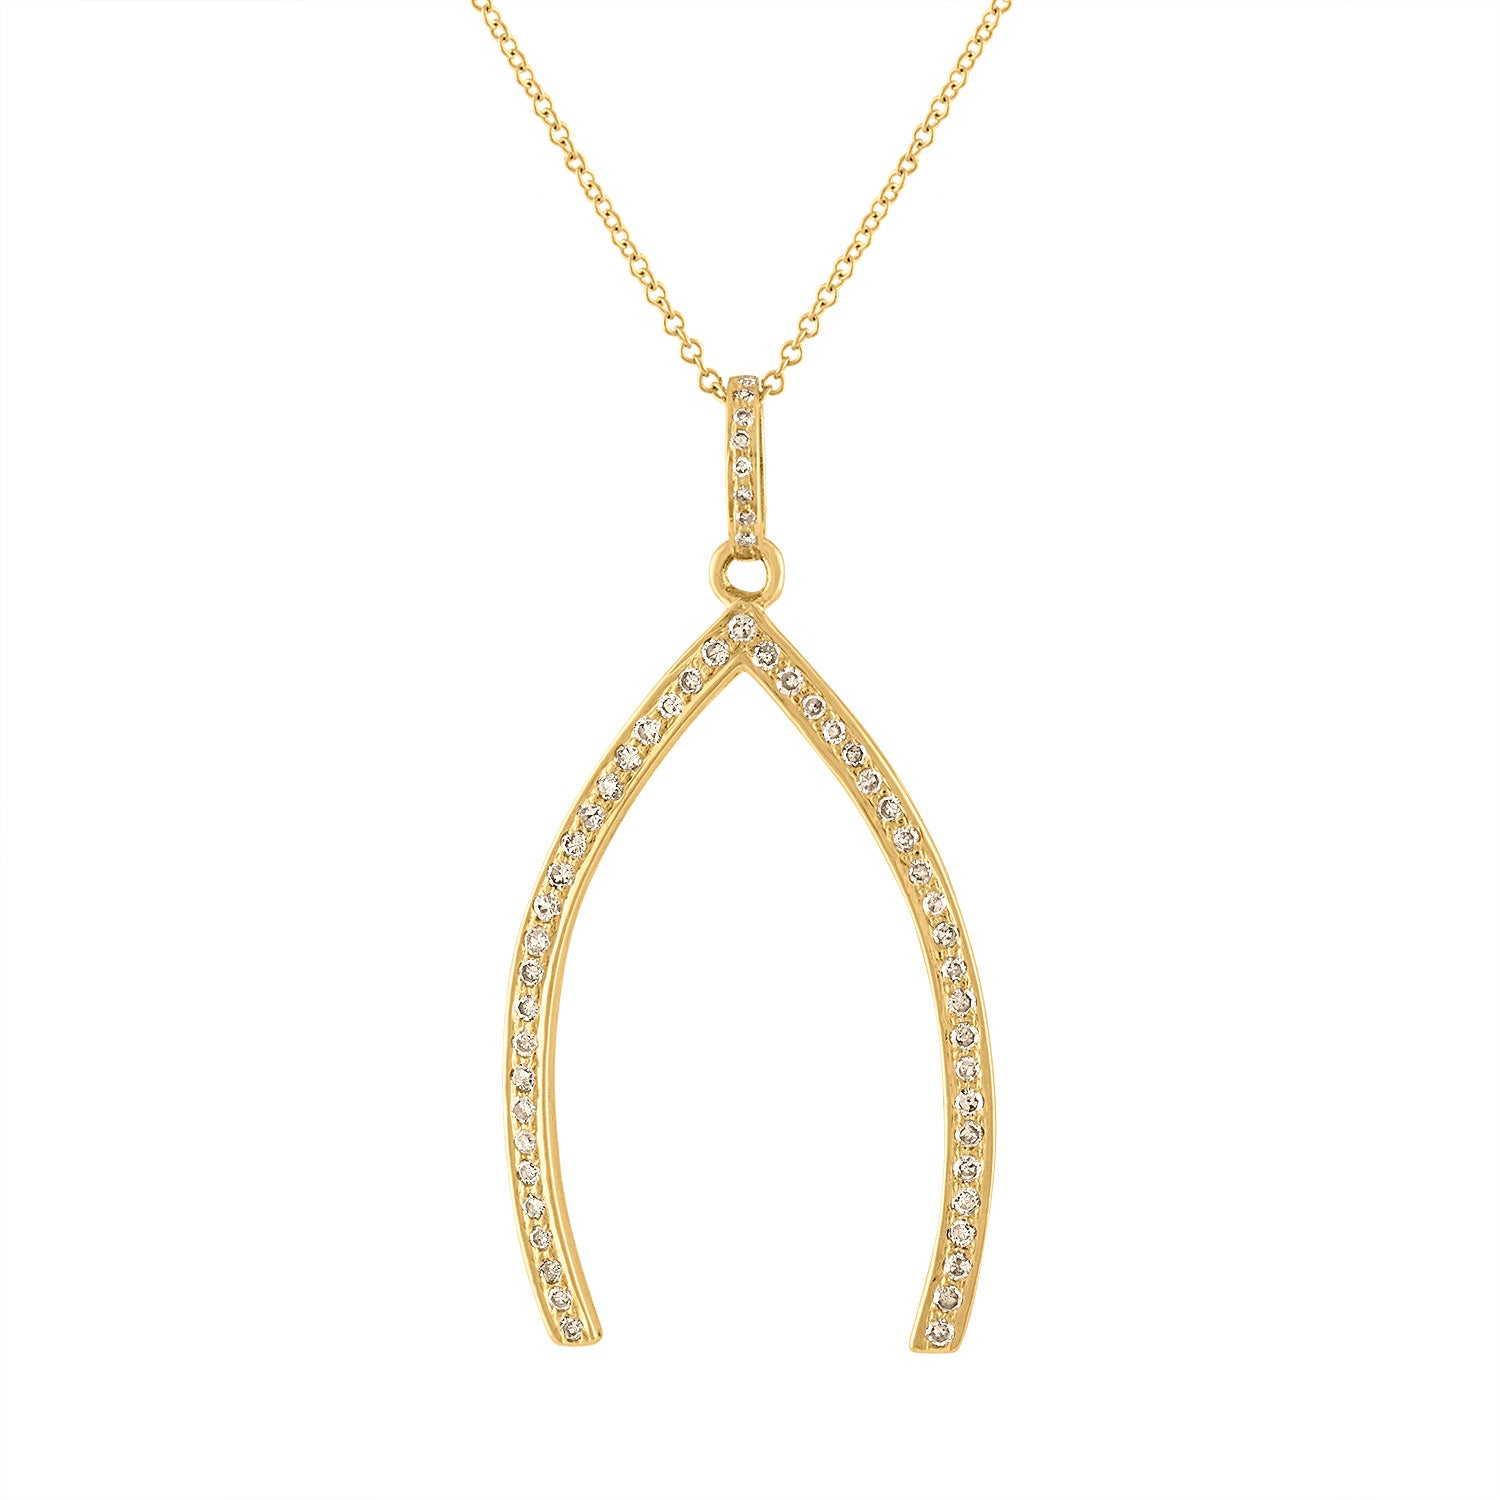 14KT YELLOW GOLD XL DIAMOND WISHBONE CHARM